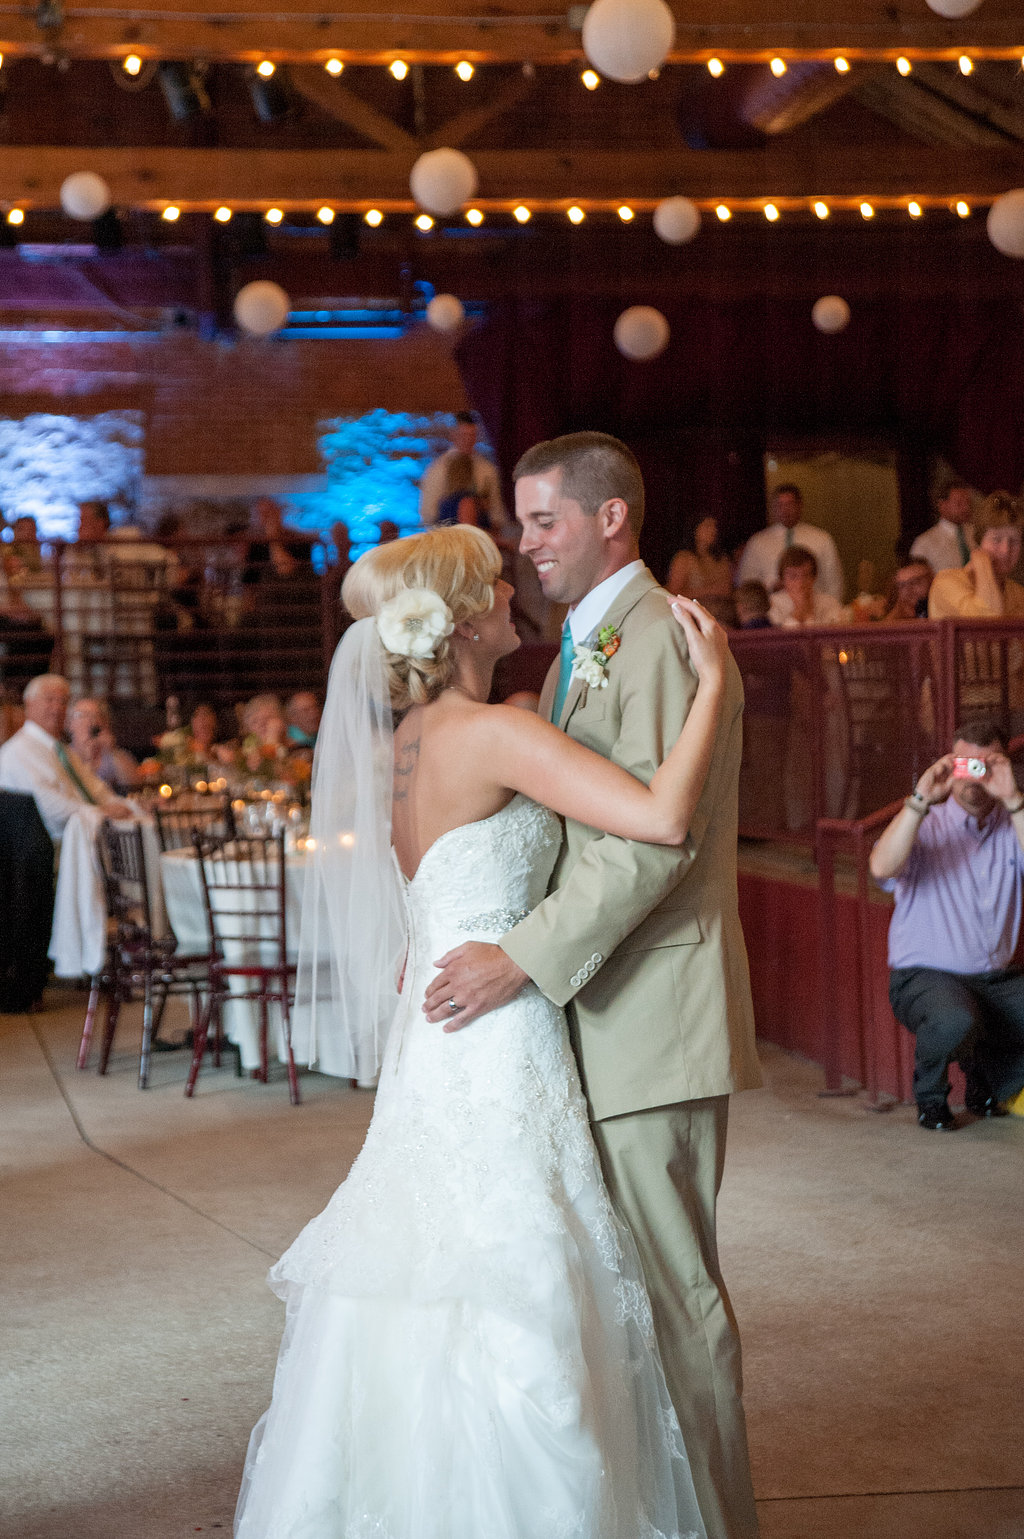 06.firstdance|parentdances-016.jpg